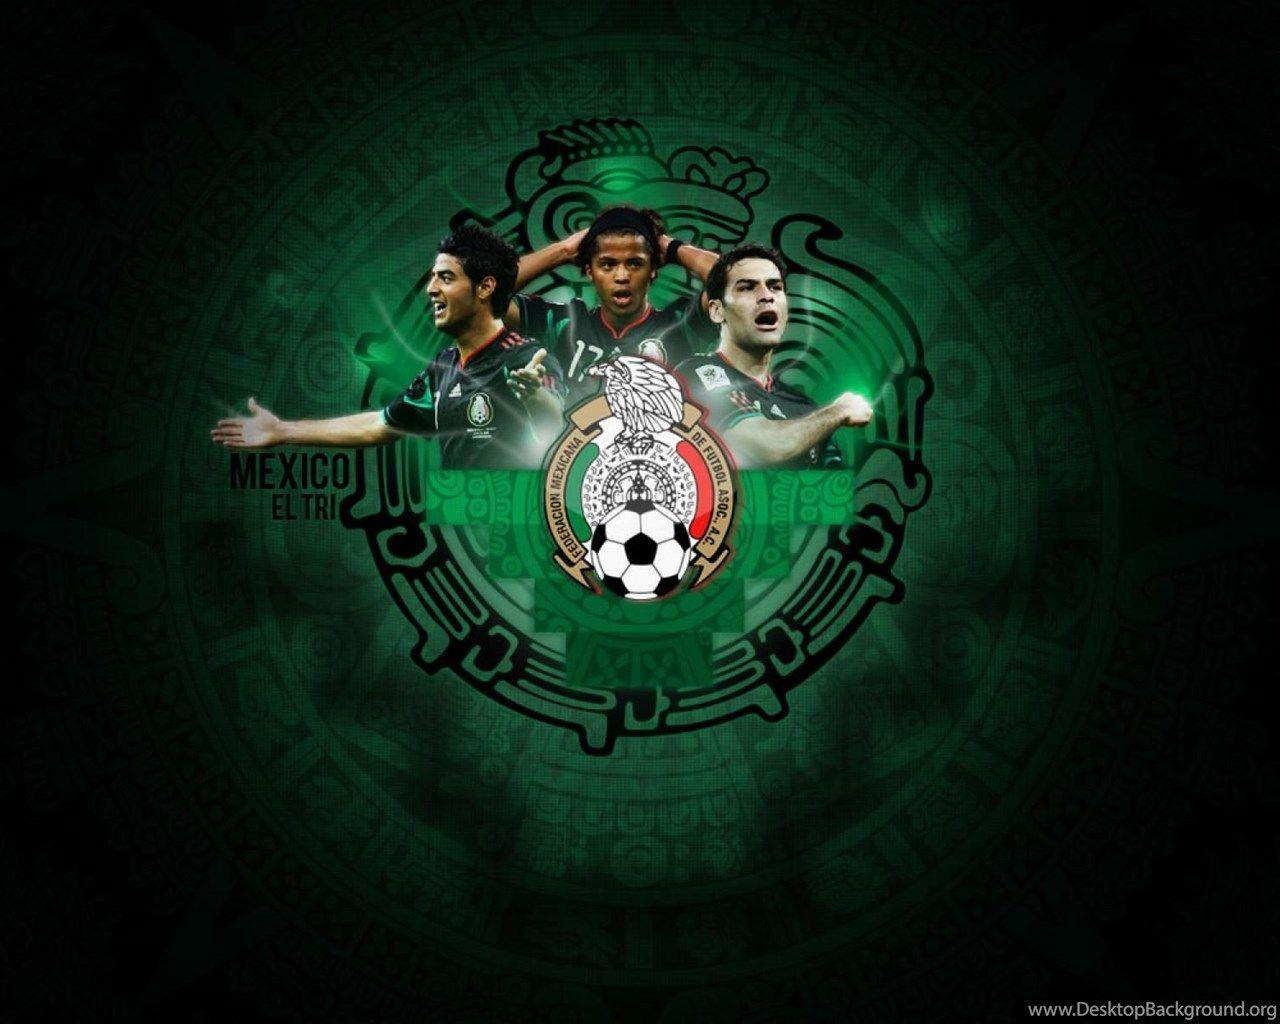 Mexico El Tri World Cup 2014 Exclusive HD Wallpapers Desktop Backgrounds